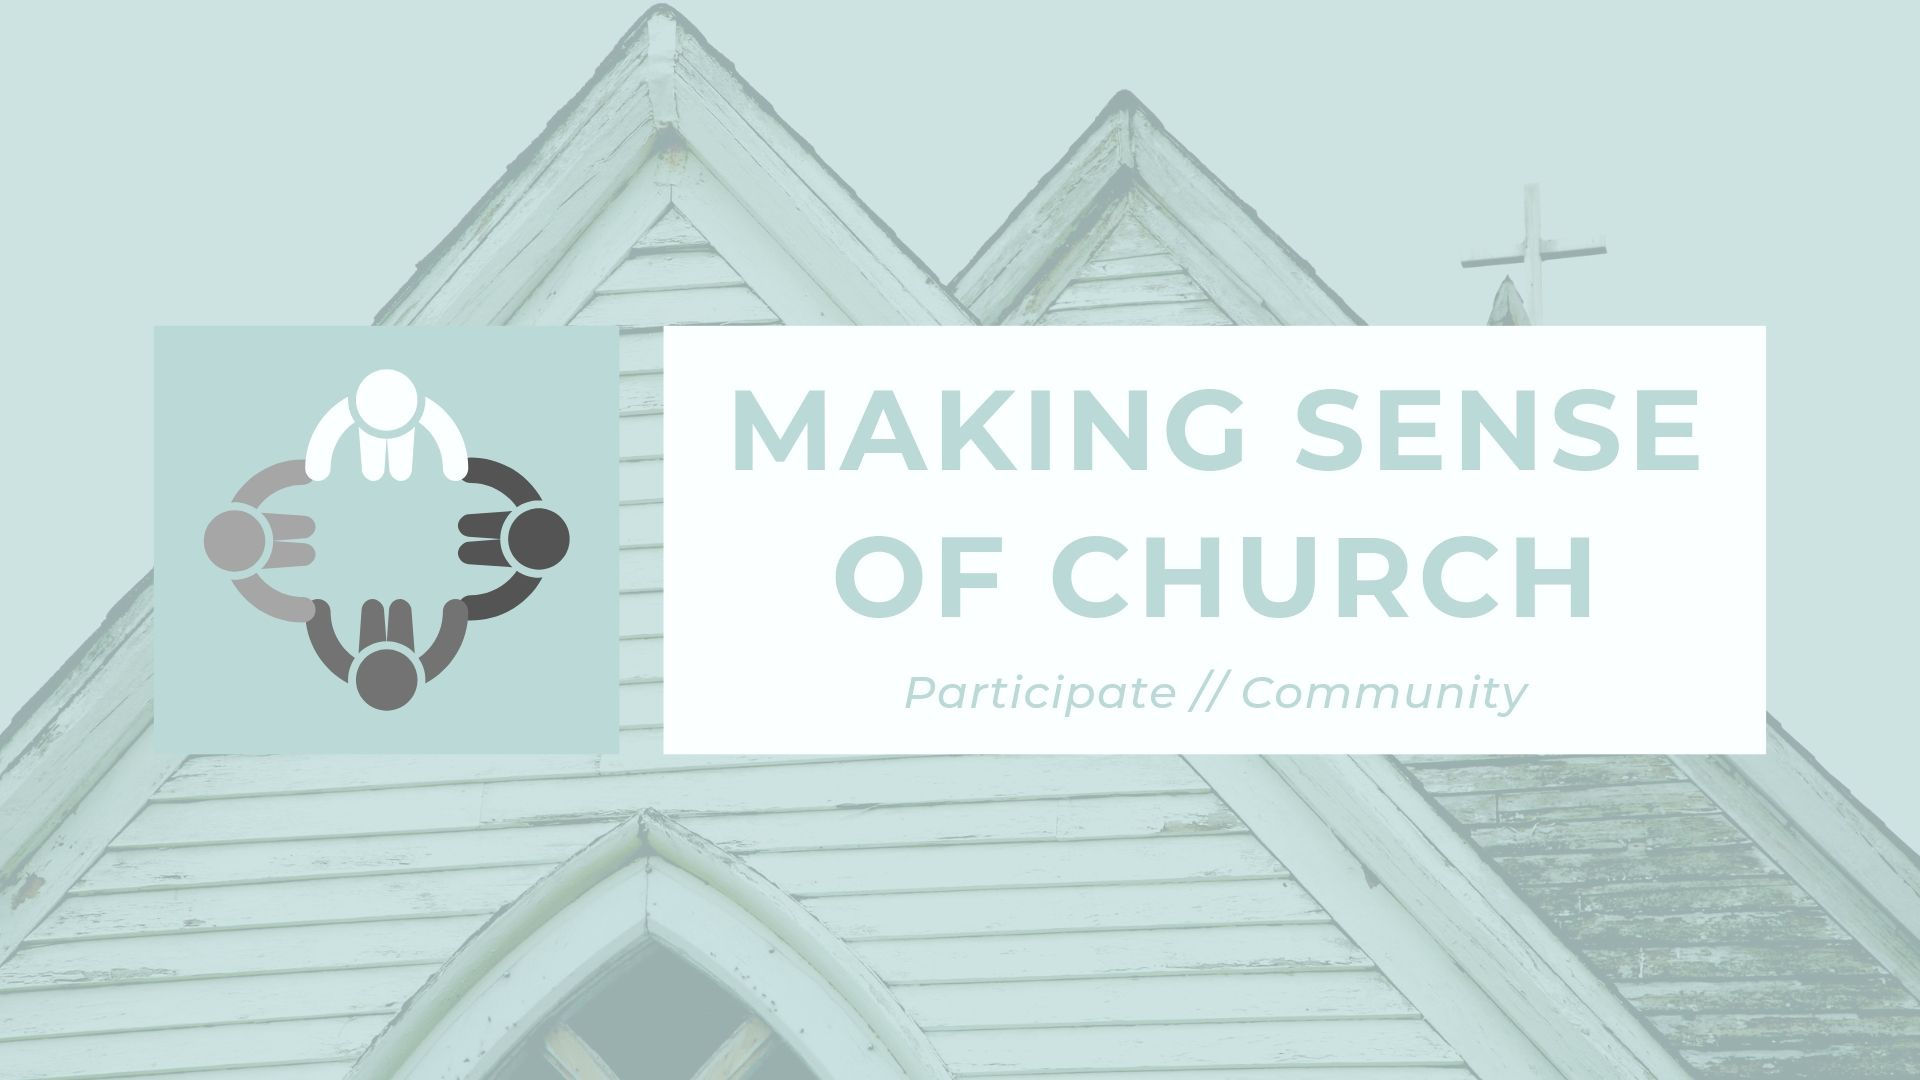 Making Sense of Church - Week #2 - Participate / Community - Rainier Valley Church - Seattle, Washington